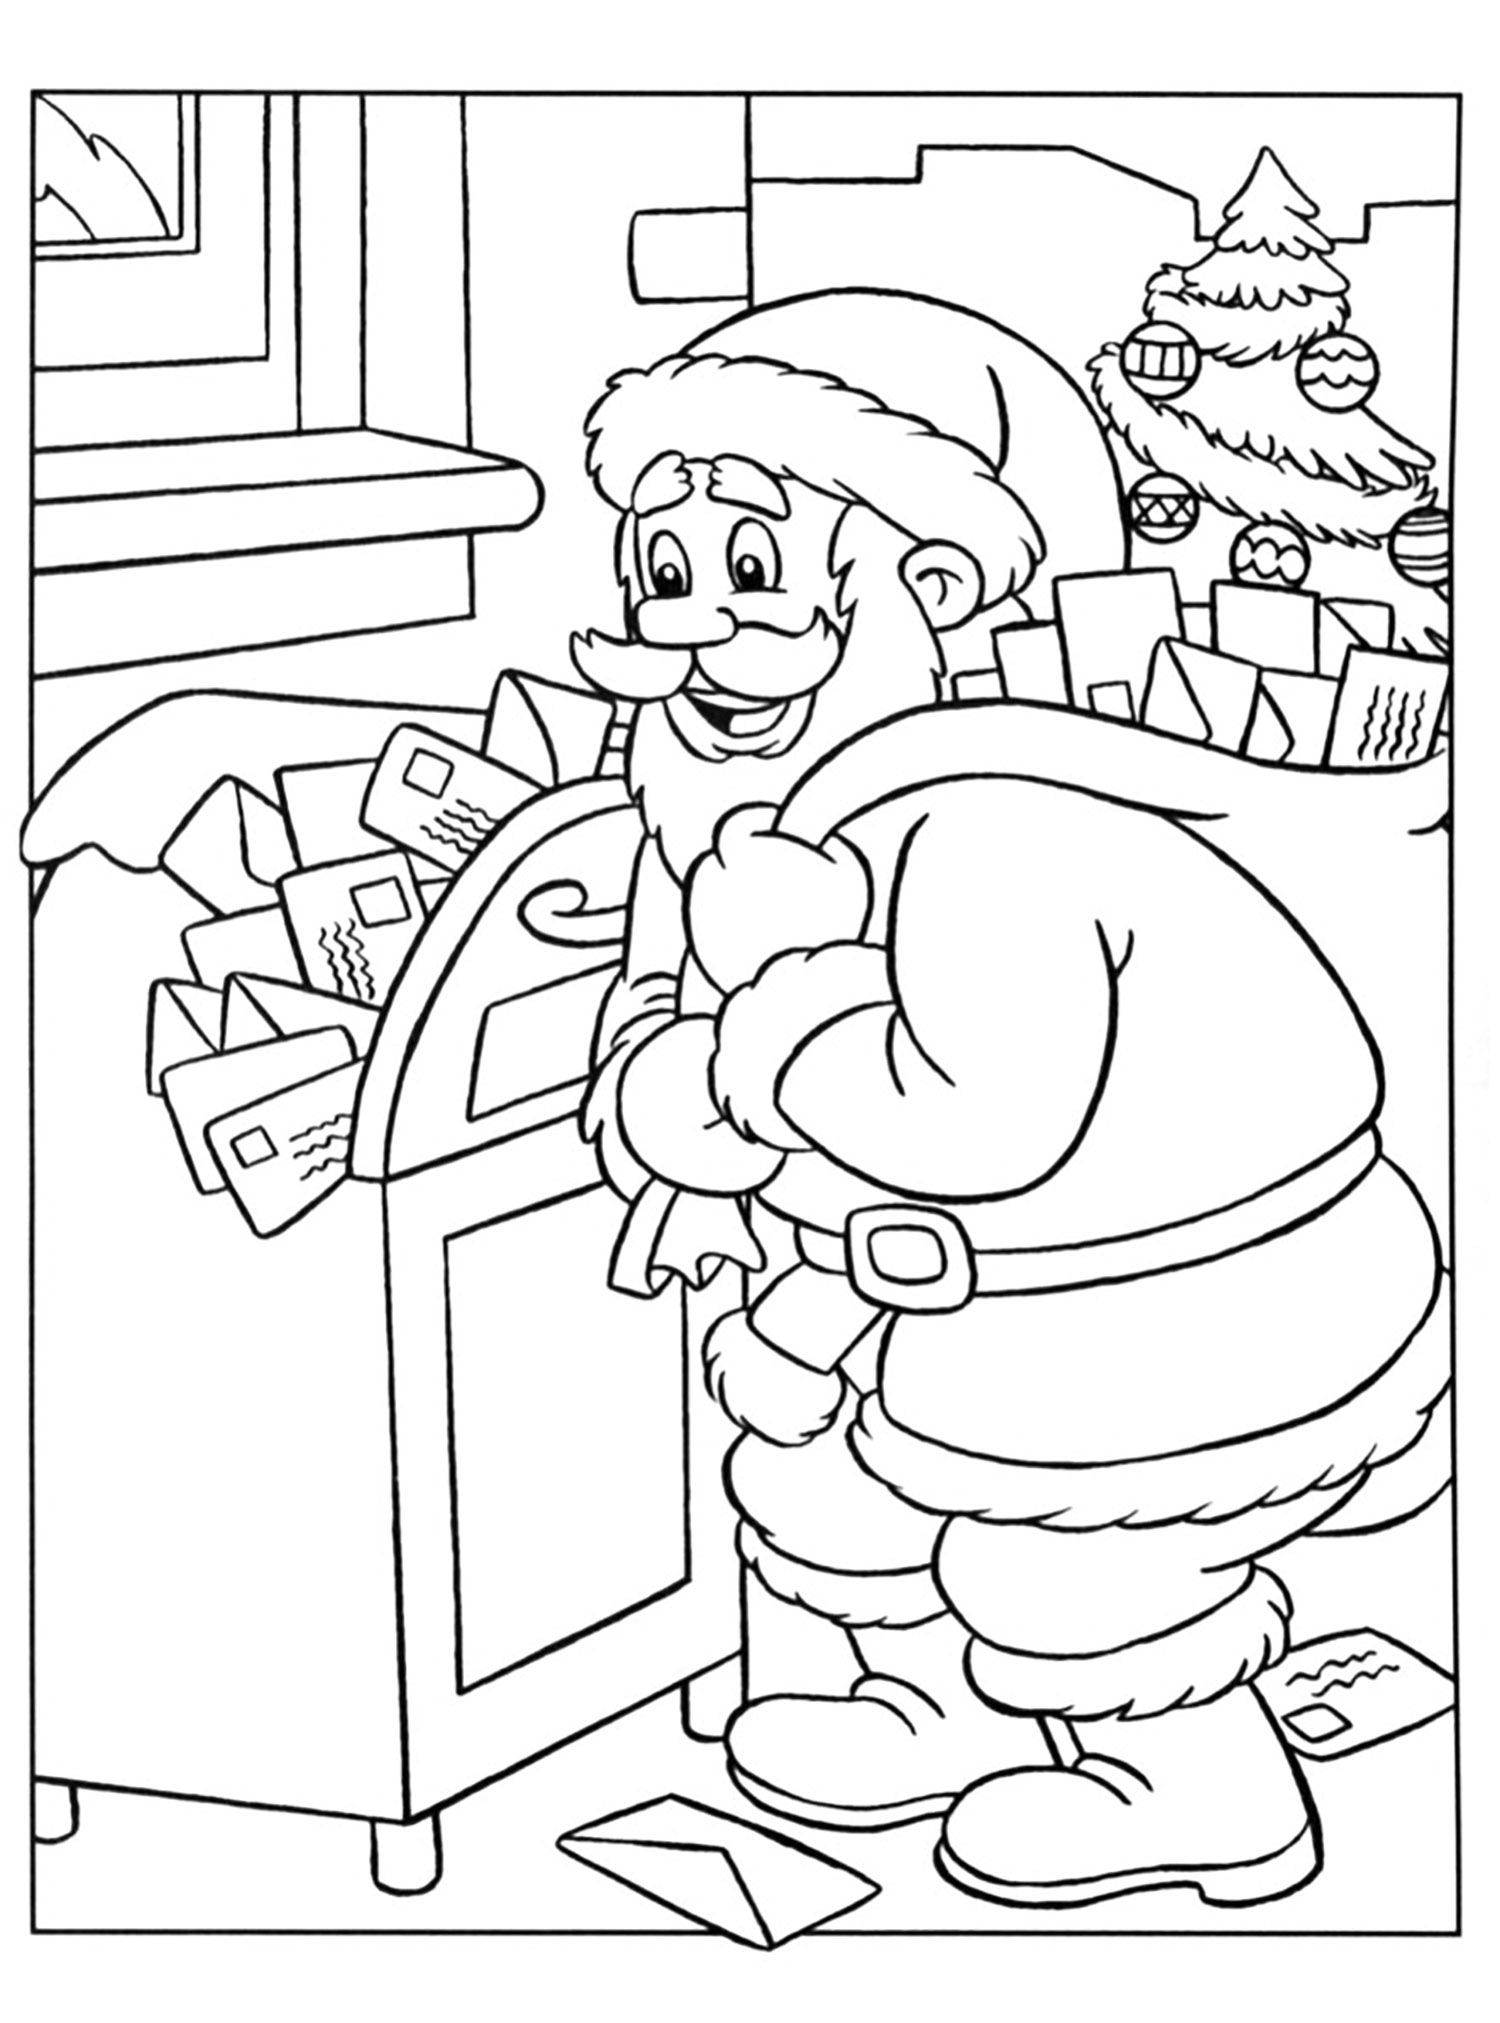 colour in father christmas santa in sleigh coloring pages download and print for free in father colour christmas